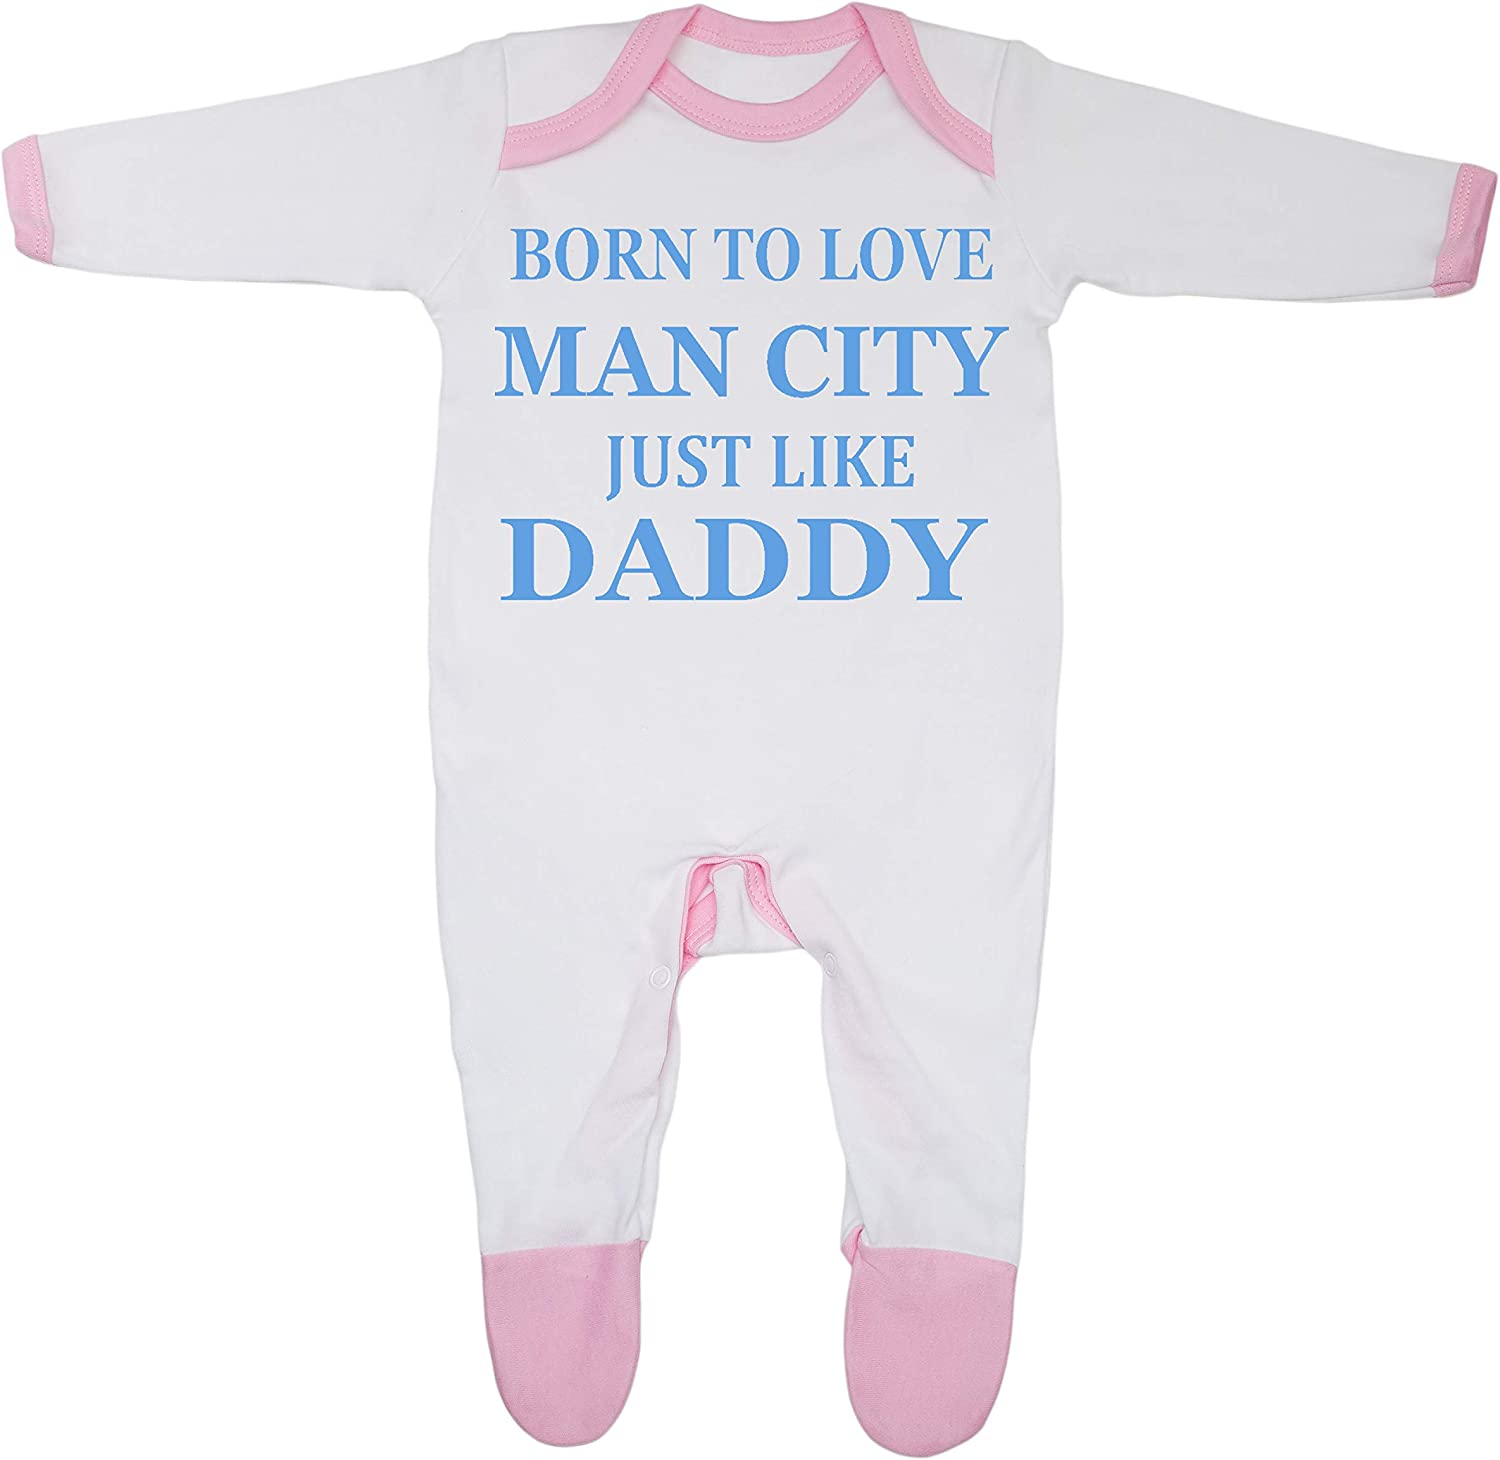 Born to Love Man City Just Like Daddy Baby Boy Girl Sleepsuit Made in the UK Using 100/% Fine Combed Cotton